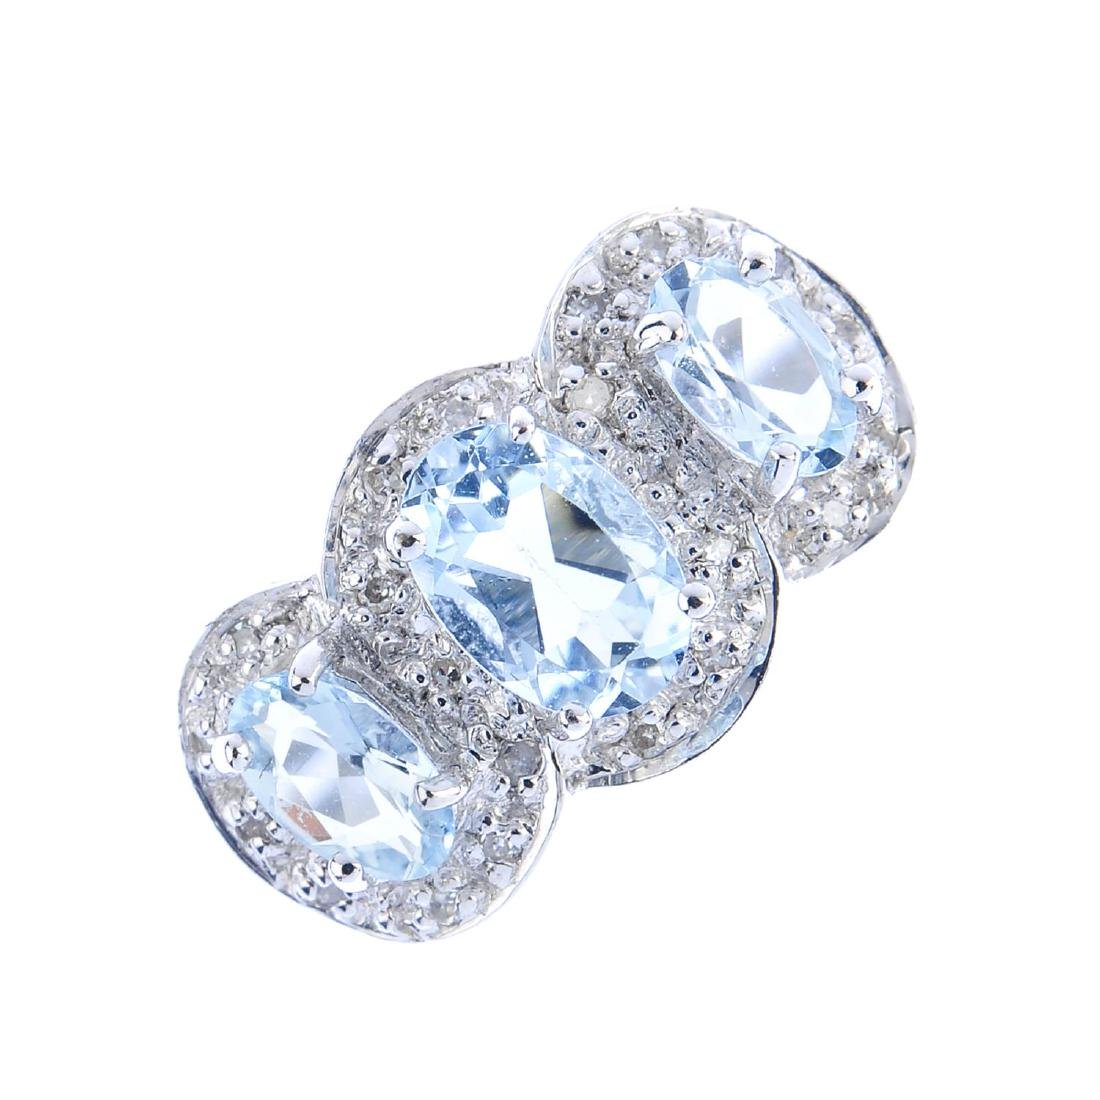 A 9ct gold aquamarine and diamond cluster ring. The